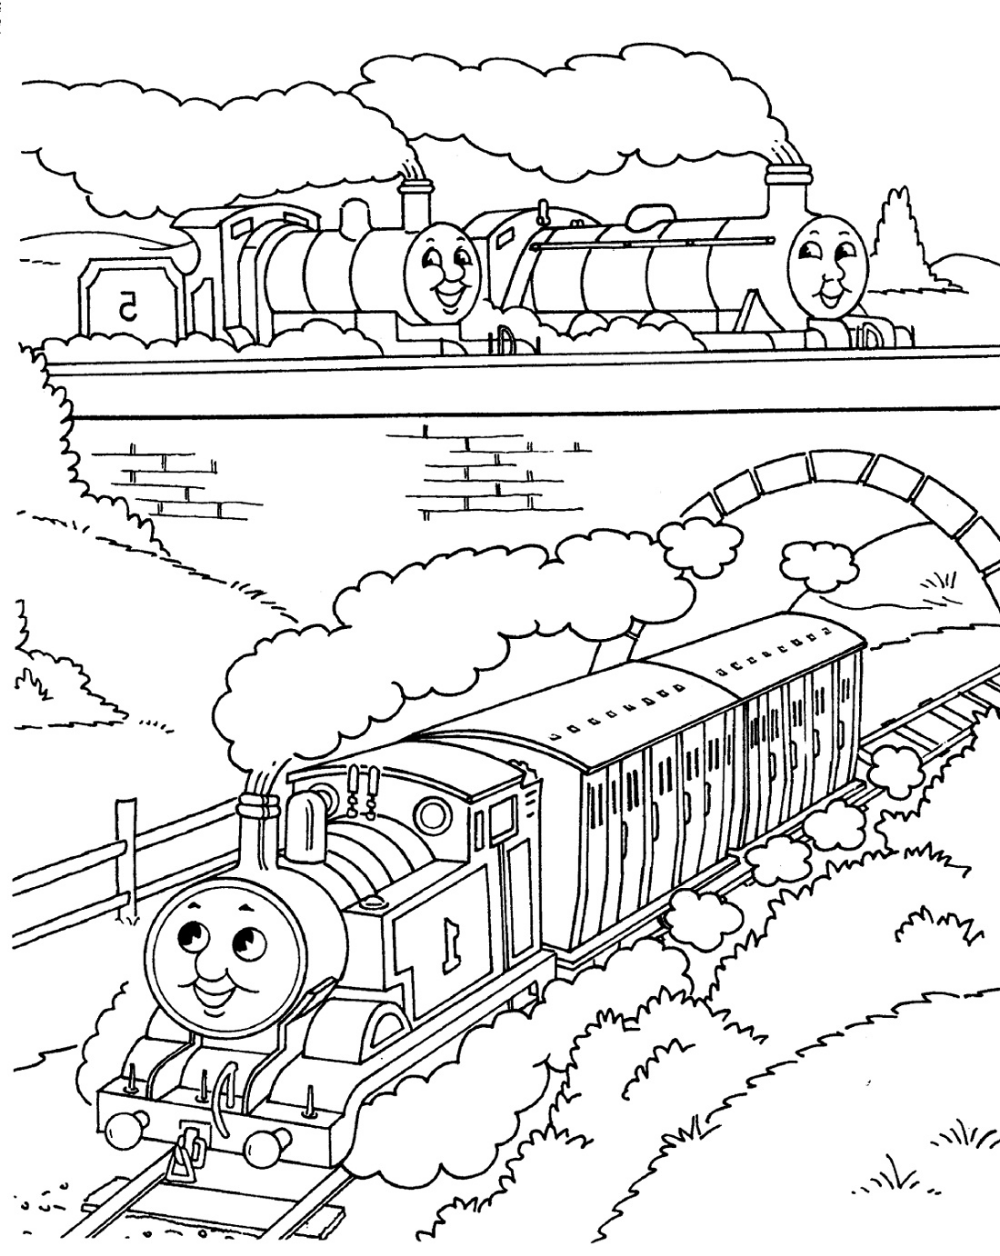 Thomas Coloring Pages (With images) | Coloring pages ...